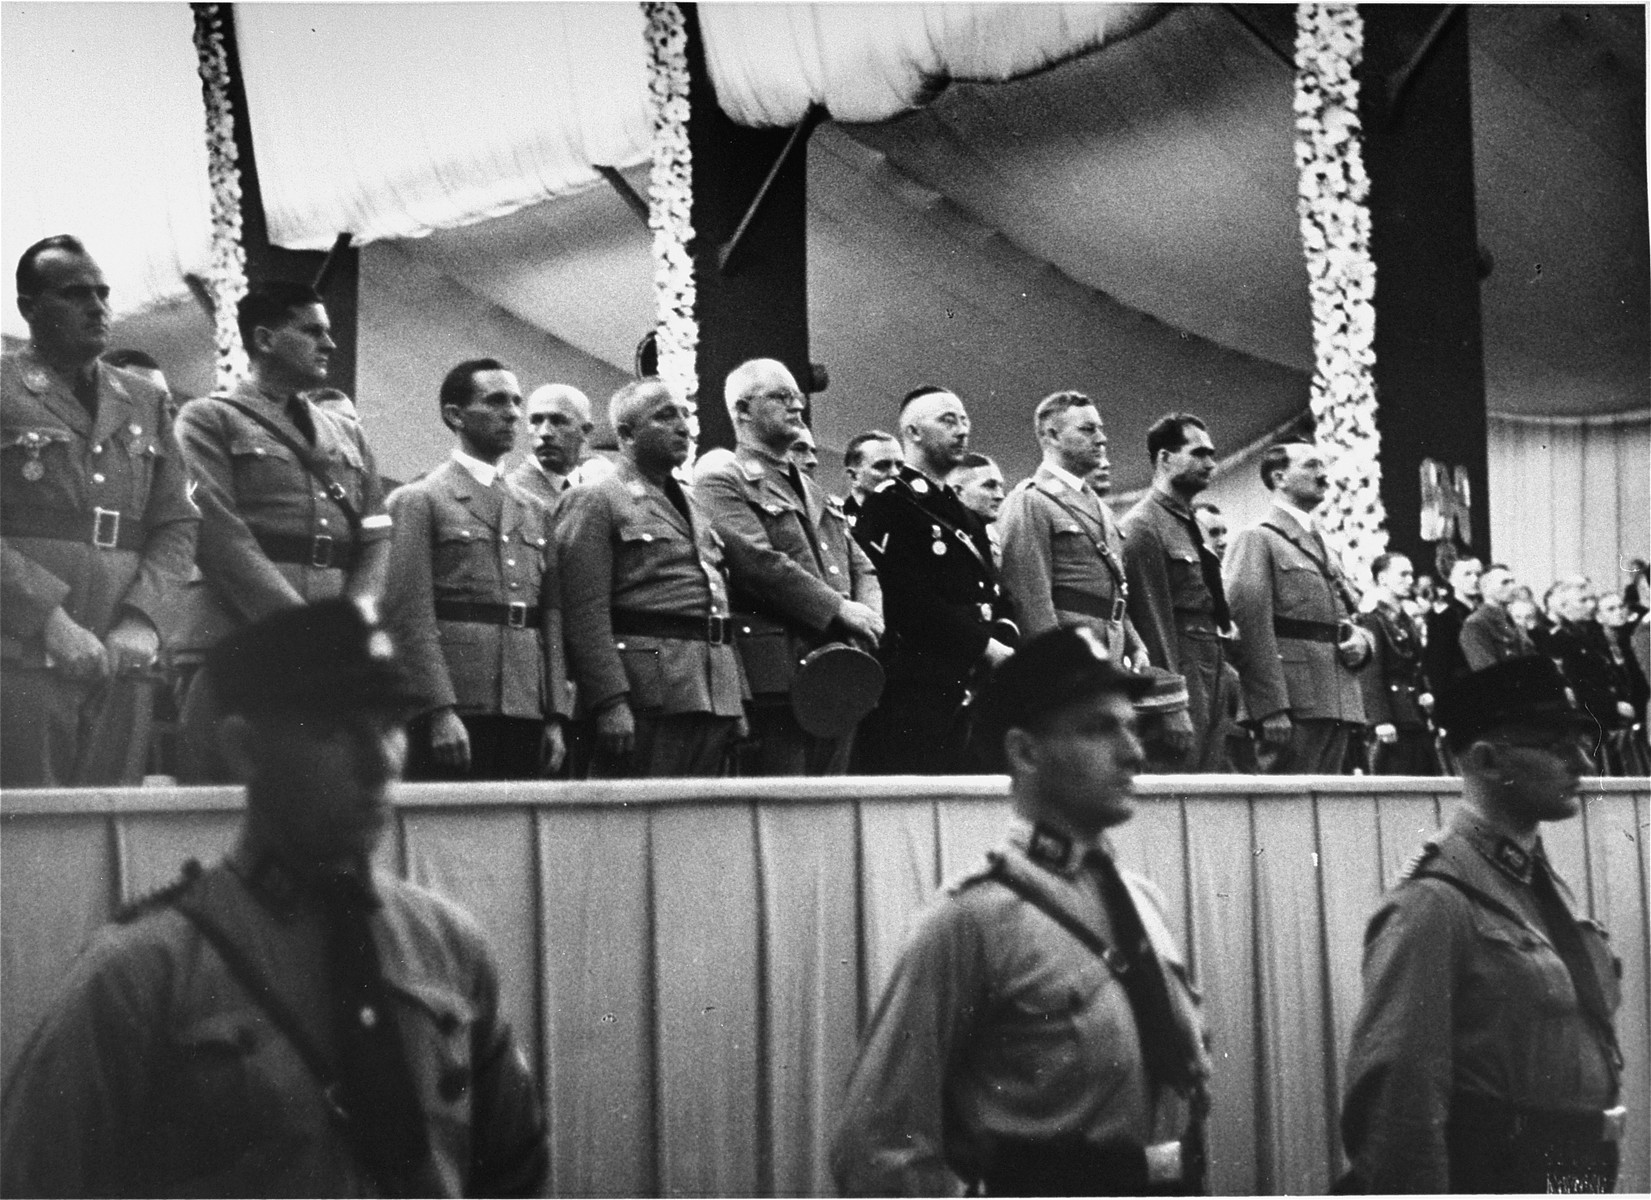 Adolf Hitler and NSDAP members in the Luitpold Hall in Nuremberg for the opening of the 1935 Parteitag